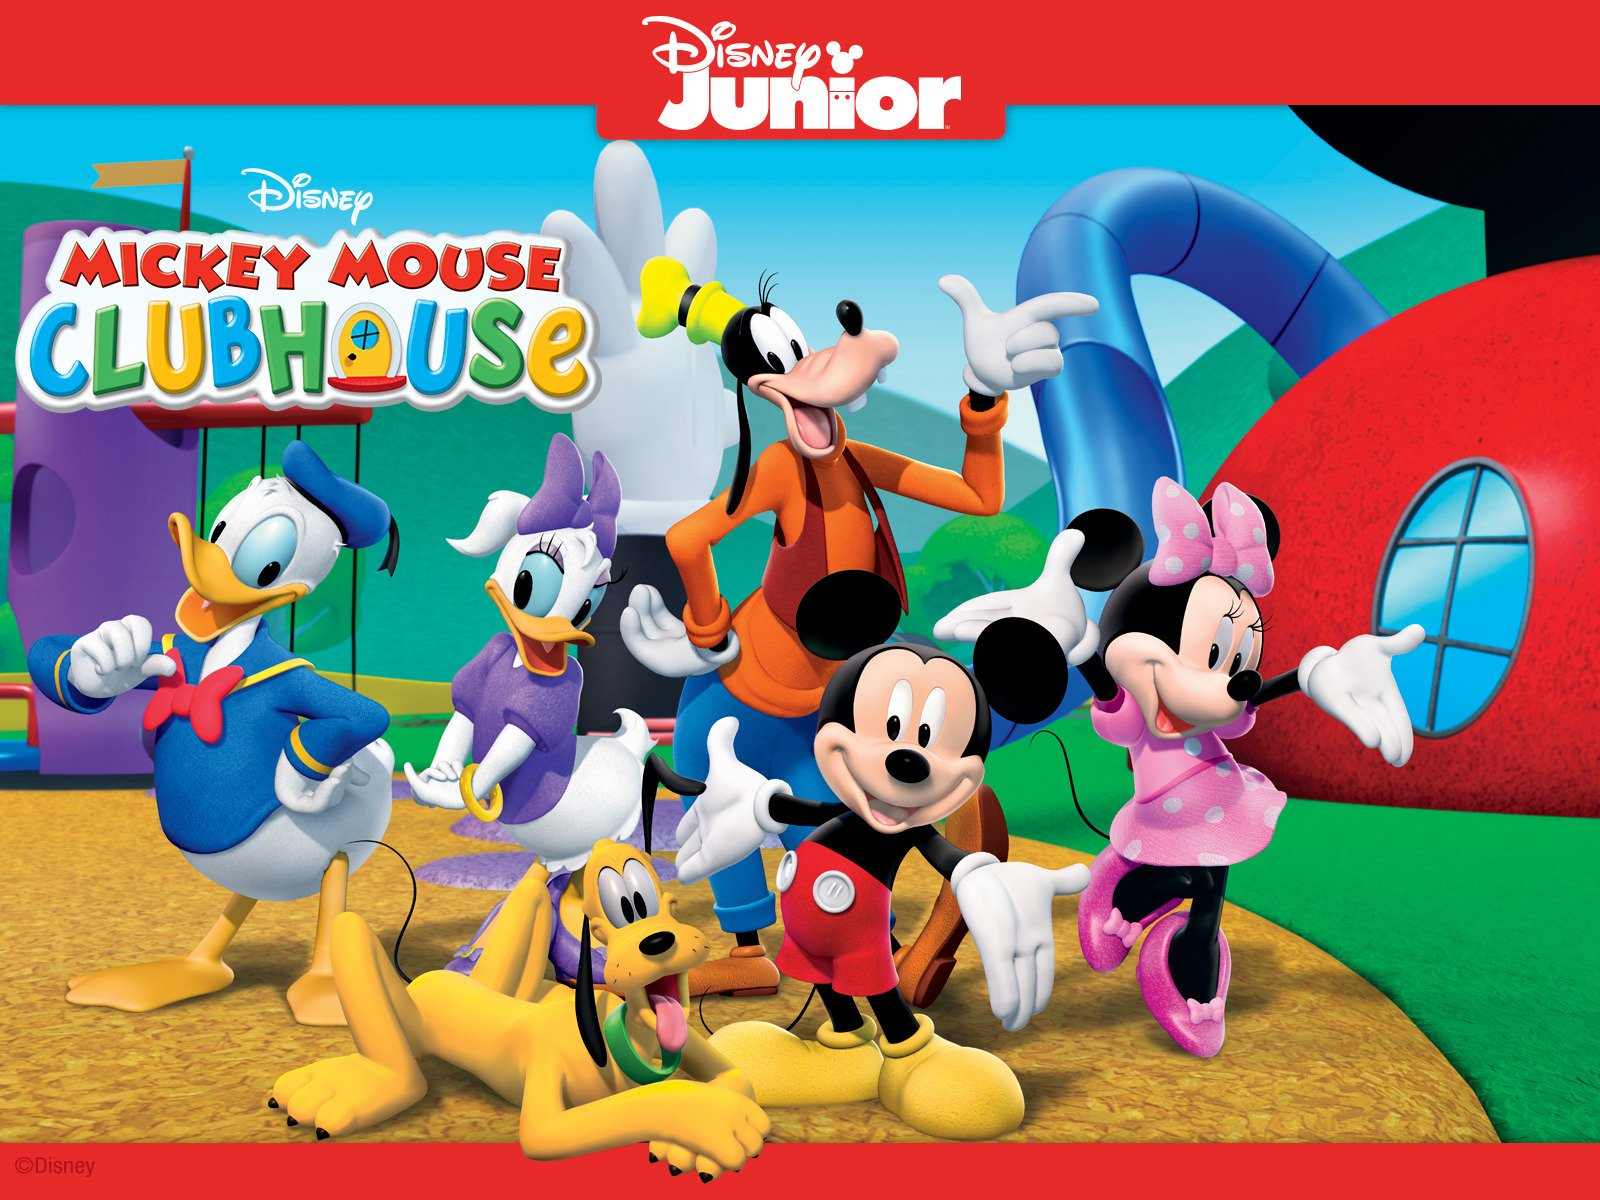 Mickey mouse clubhouse house remarkable, very